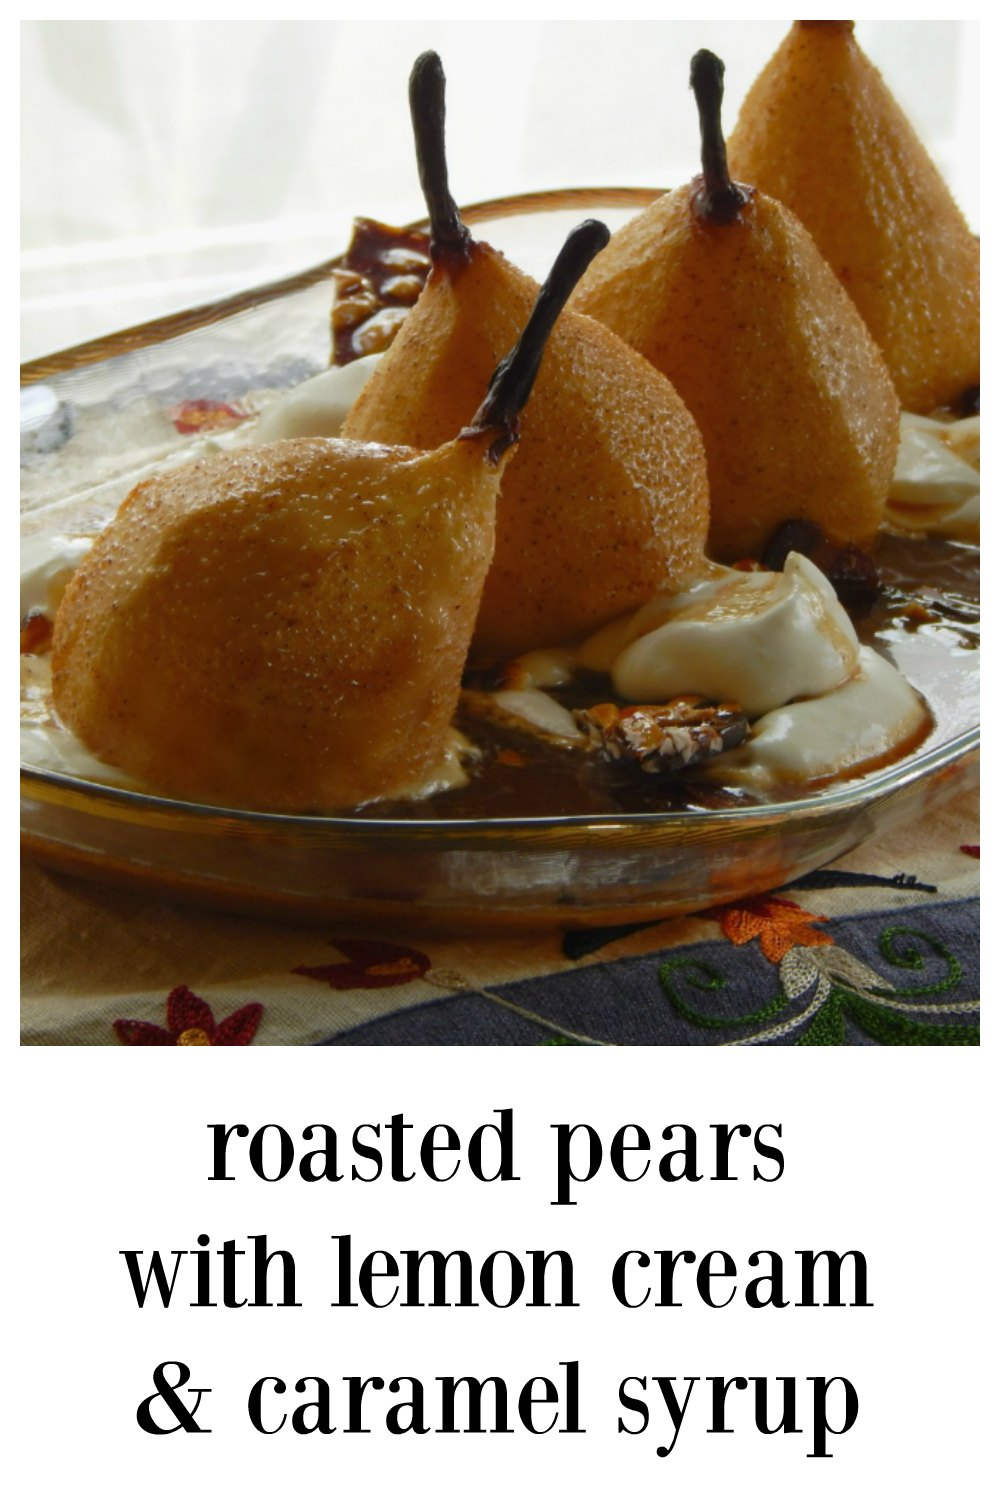 An absolute show stopper of a dessert, Roasted Pears with Lemon Cream (made from lemon curd) and a caramel sauce are crazy good. There's a crunchy praline, too. Nothing is hard about this dessert, just several components, most can be made ahead. #ThanksgivingDessert #RoastedPears #RoastedPearsLemonCream